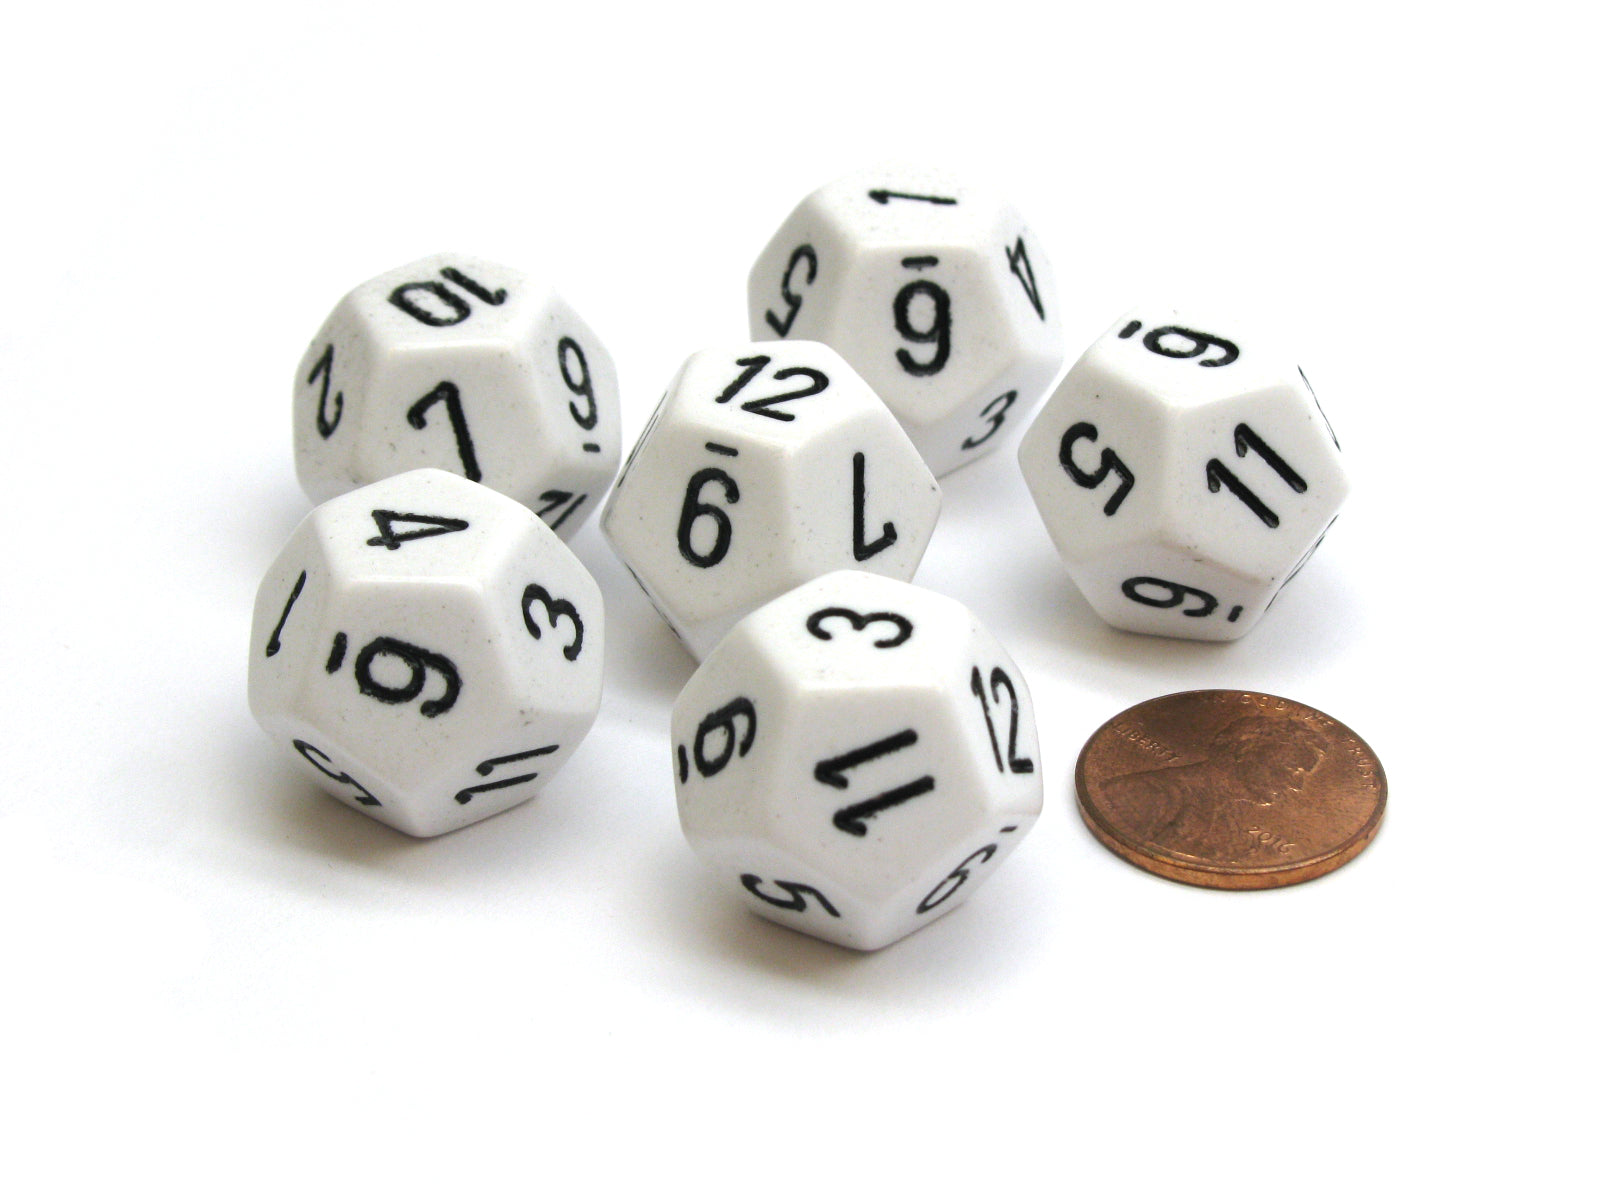 Opaque 18mm 12 Sided D12 Chessex Dice, 6 Pieces -  White with Black